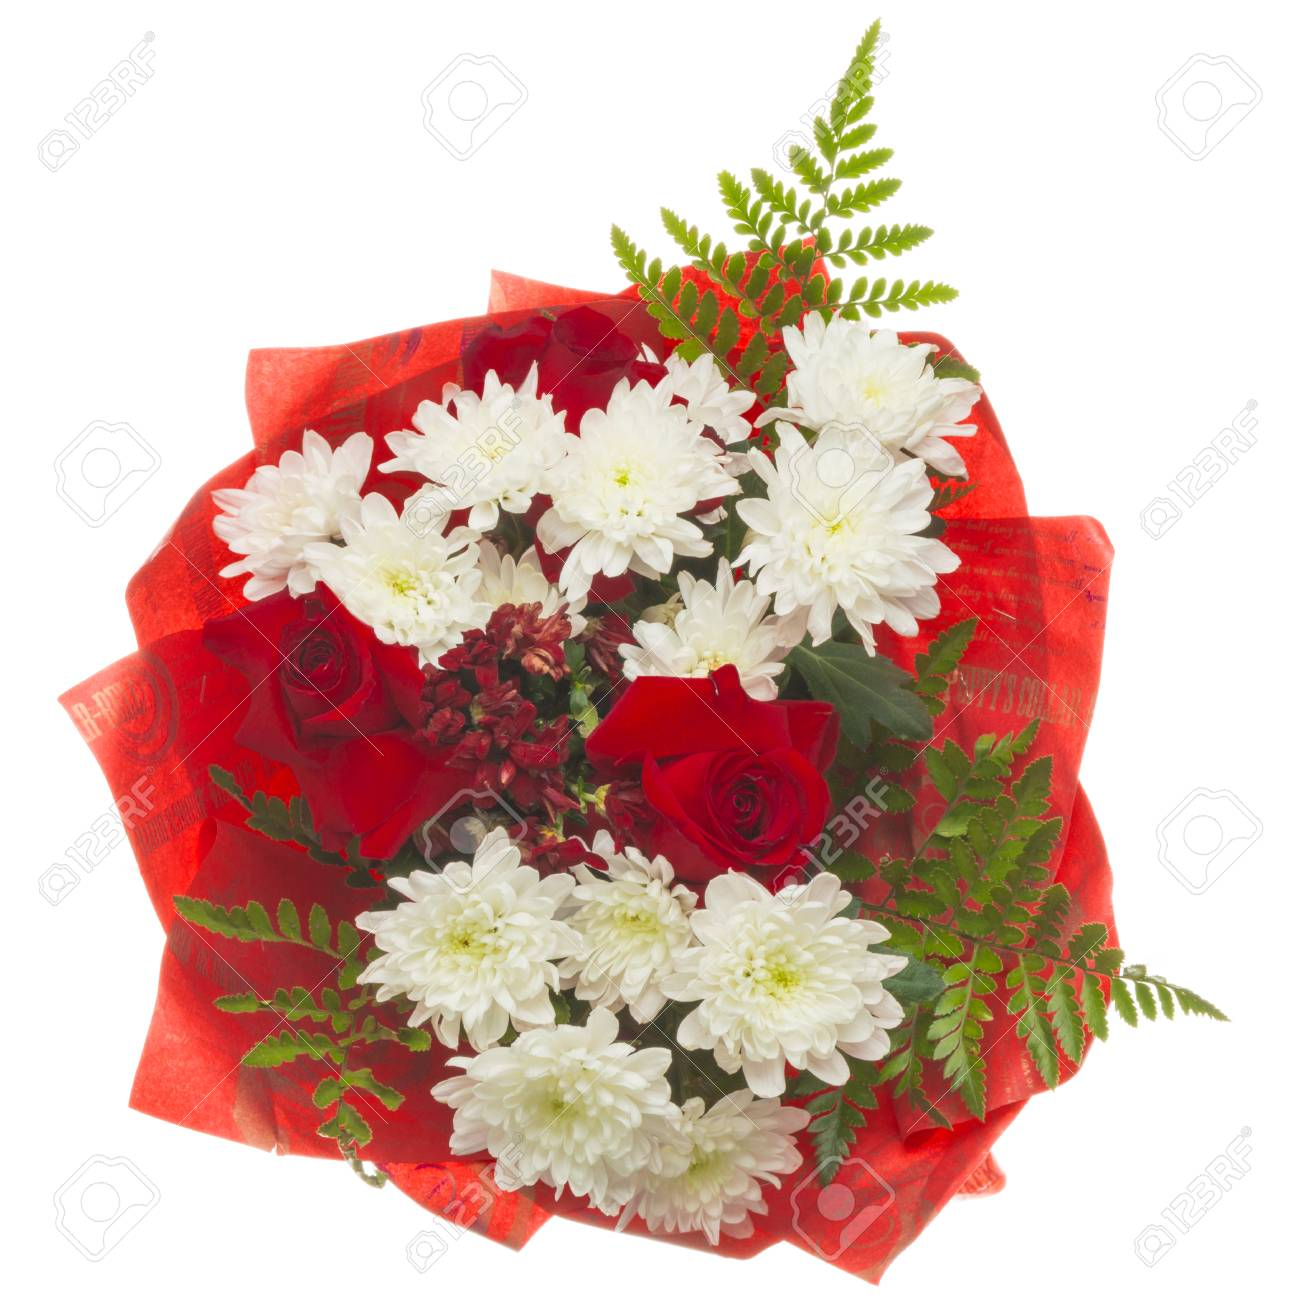 Beautiful summer flowers bouquet of red roses and white beautiful summer flowers bouquet of red roses and white chrysanthemum and green fern leaves in red izmirmasajfo